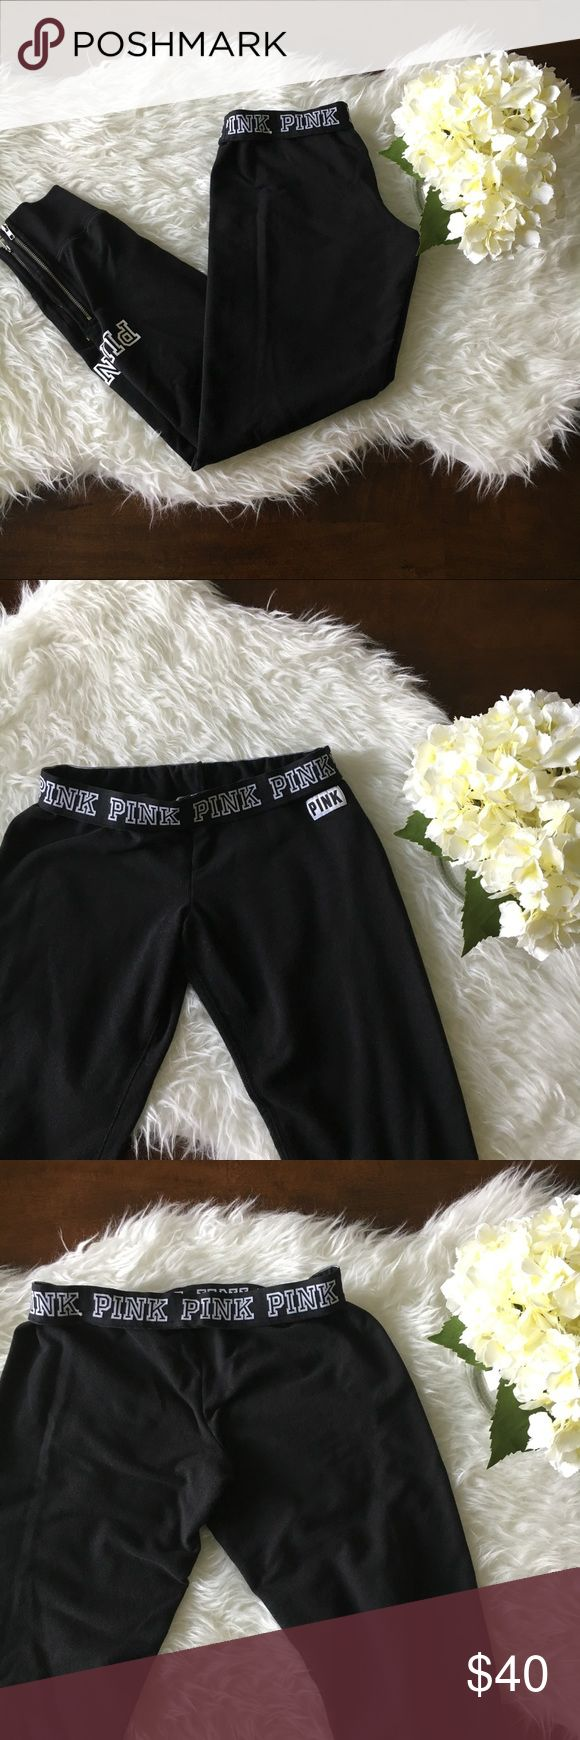 """PINK VS Black Joggers with Zipper Detail Excellent used condition. PINK Victoria's Secret soft and cozy black joggers with PINK logo in white and zipper detail to ankles. Approx measurements: inseam: 27"""". No tears, holes, or stains. Smoke free home. No trades please. PINK Victoria's Secret Pants Track Pants & Joggers"""